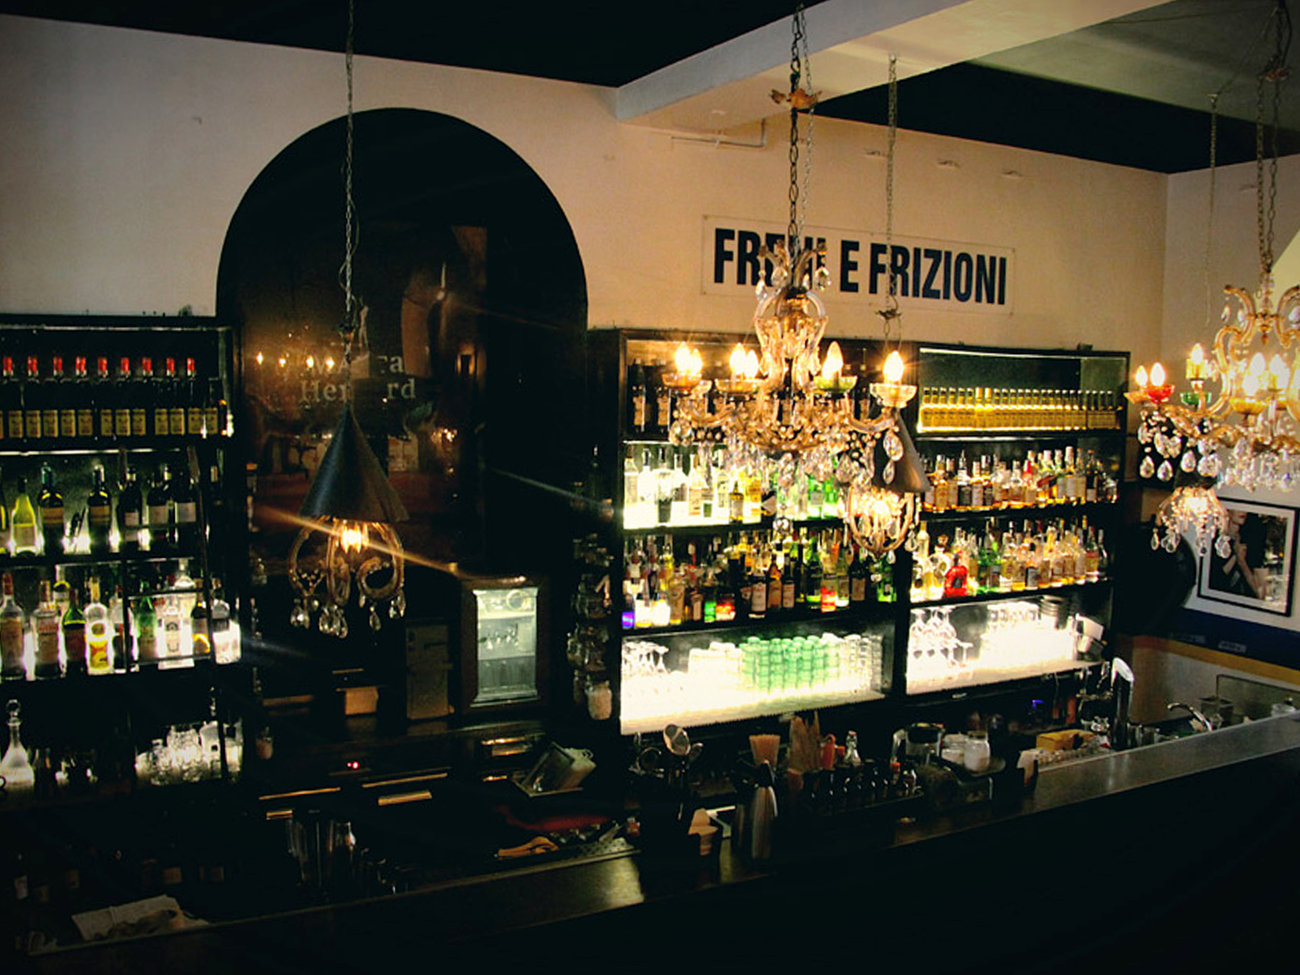 Freni e Frizioni Bar in Rome